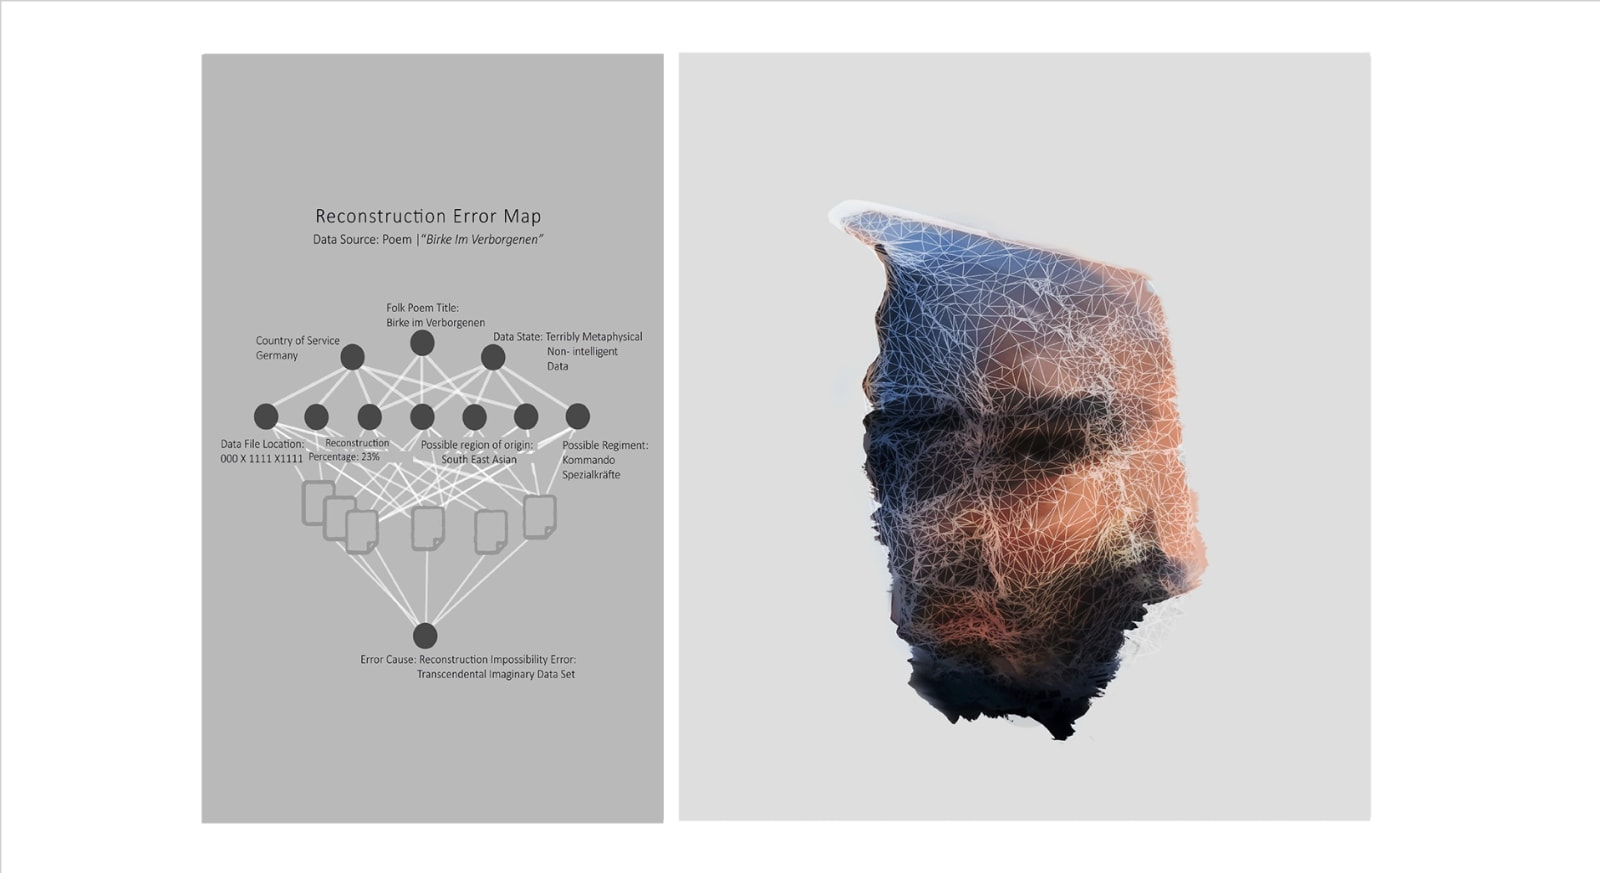 MOONIS AHMAD SHAH Some Other People Were Here Too, 2018 Archival prints on archival Epson paper, algorithm reconstruction and text 15.7 x 23.5 in. Edition 3/3 ₹ 60,000.00